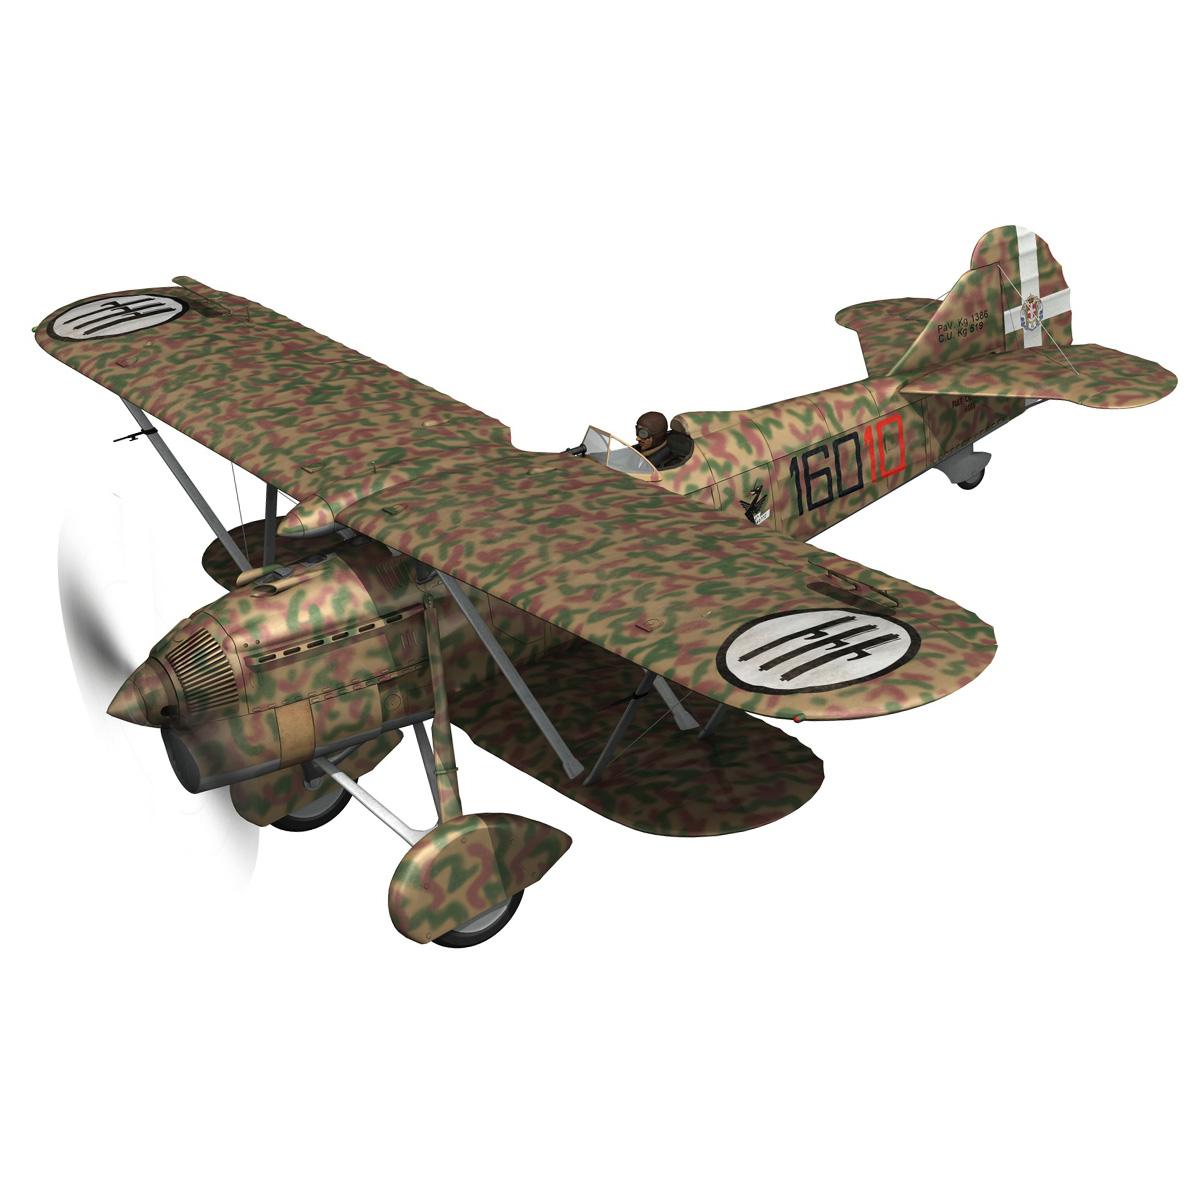 fiat cr.32 – italy airforce – 160 squadriglia 3d model fbx c4d lwo obj 268103